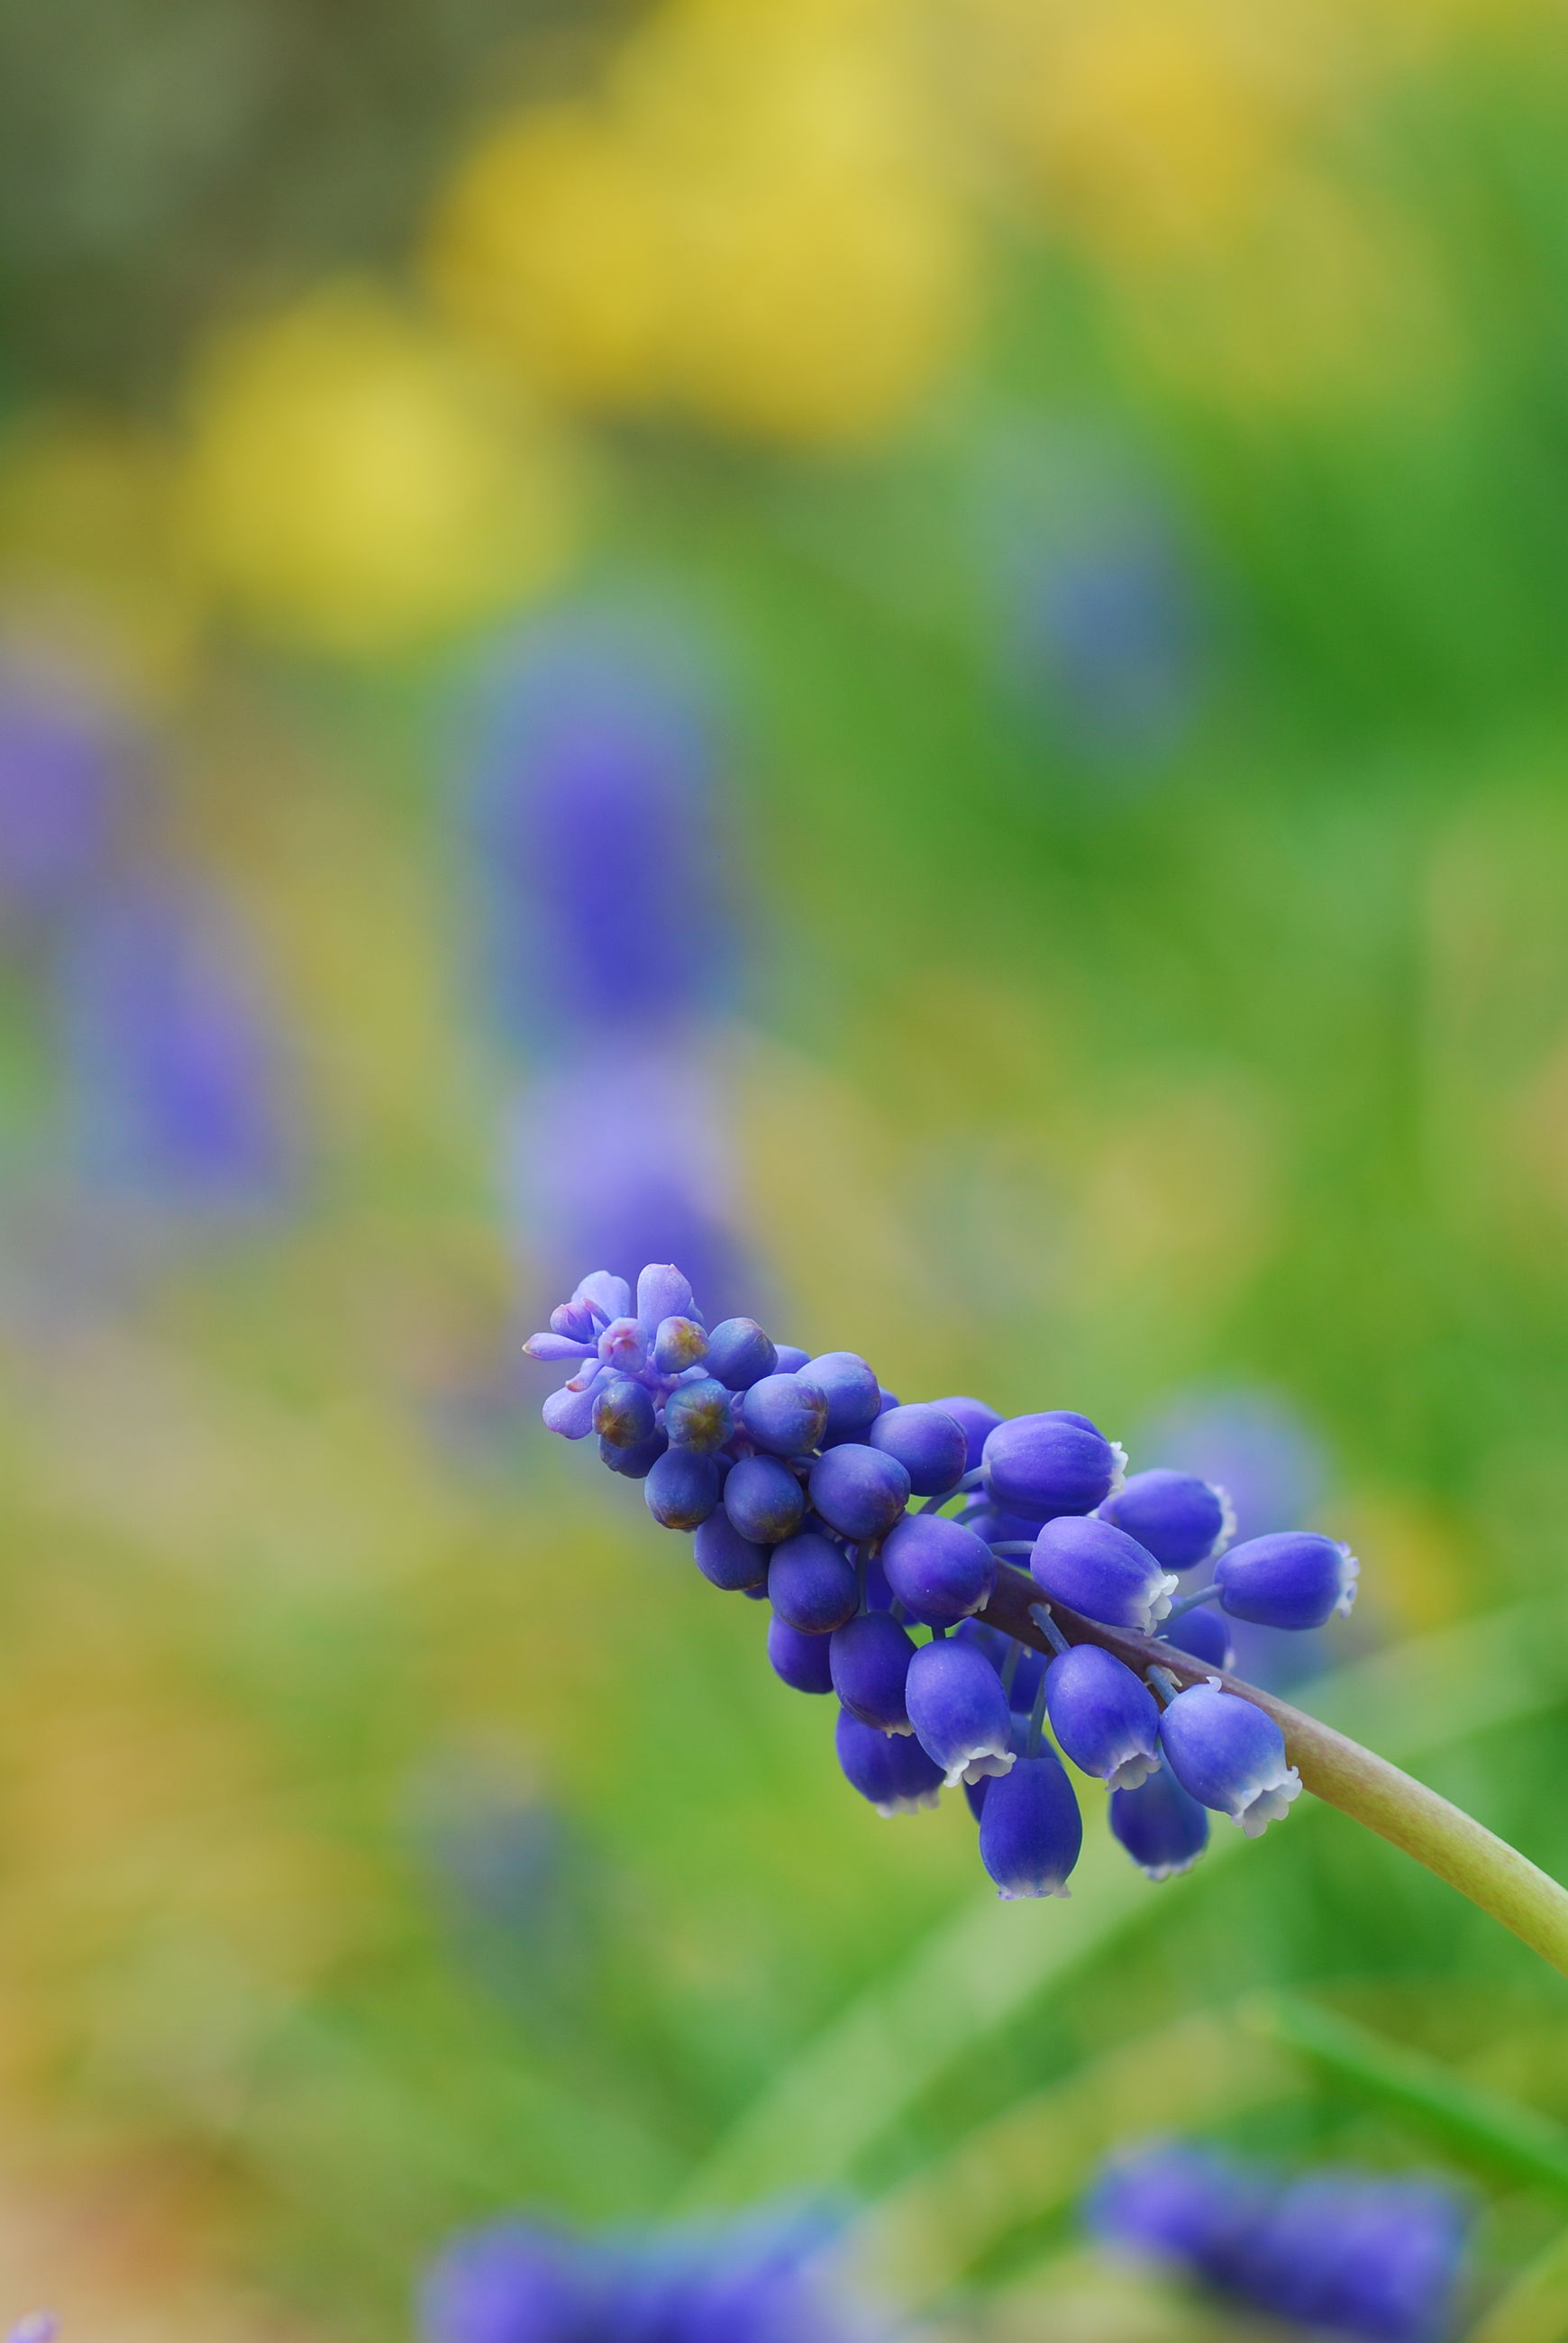 flower, fragility, freshness, purple, beauty in nature, nature, focus on foreground, growth, close-up, flower head, petal, plant, no people, blooming, day, outdoors